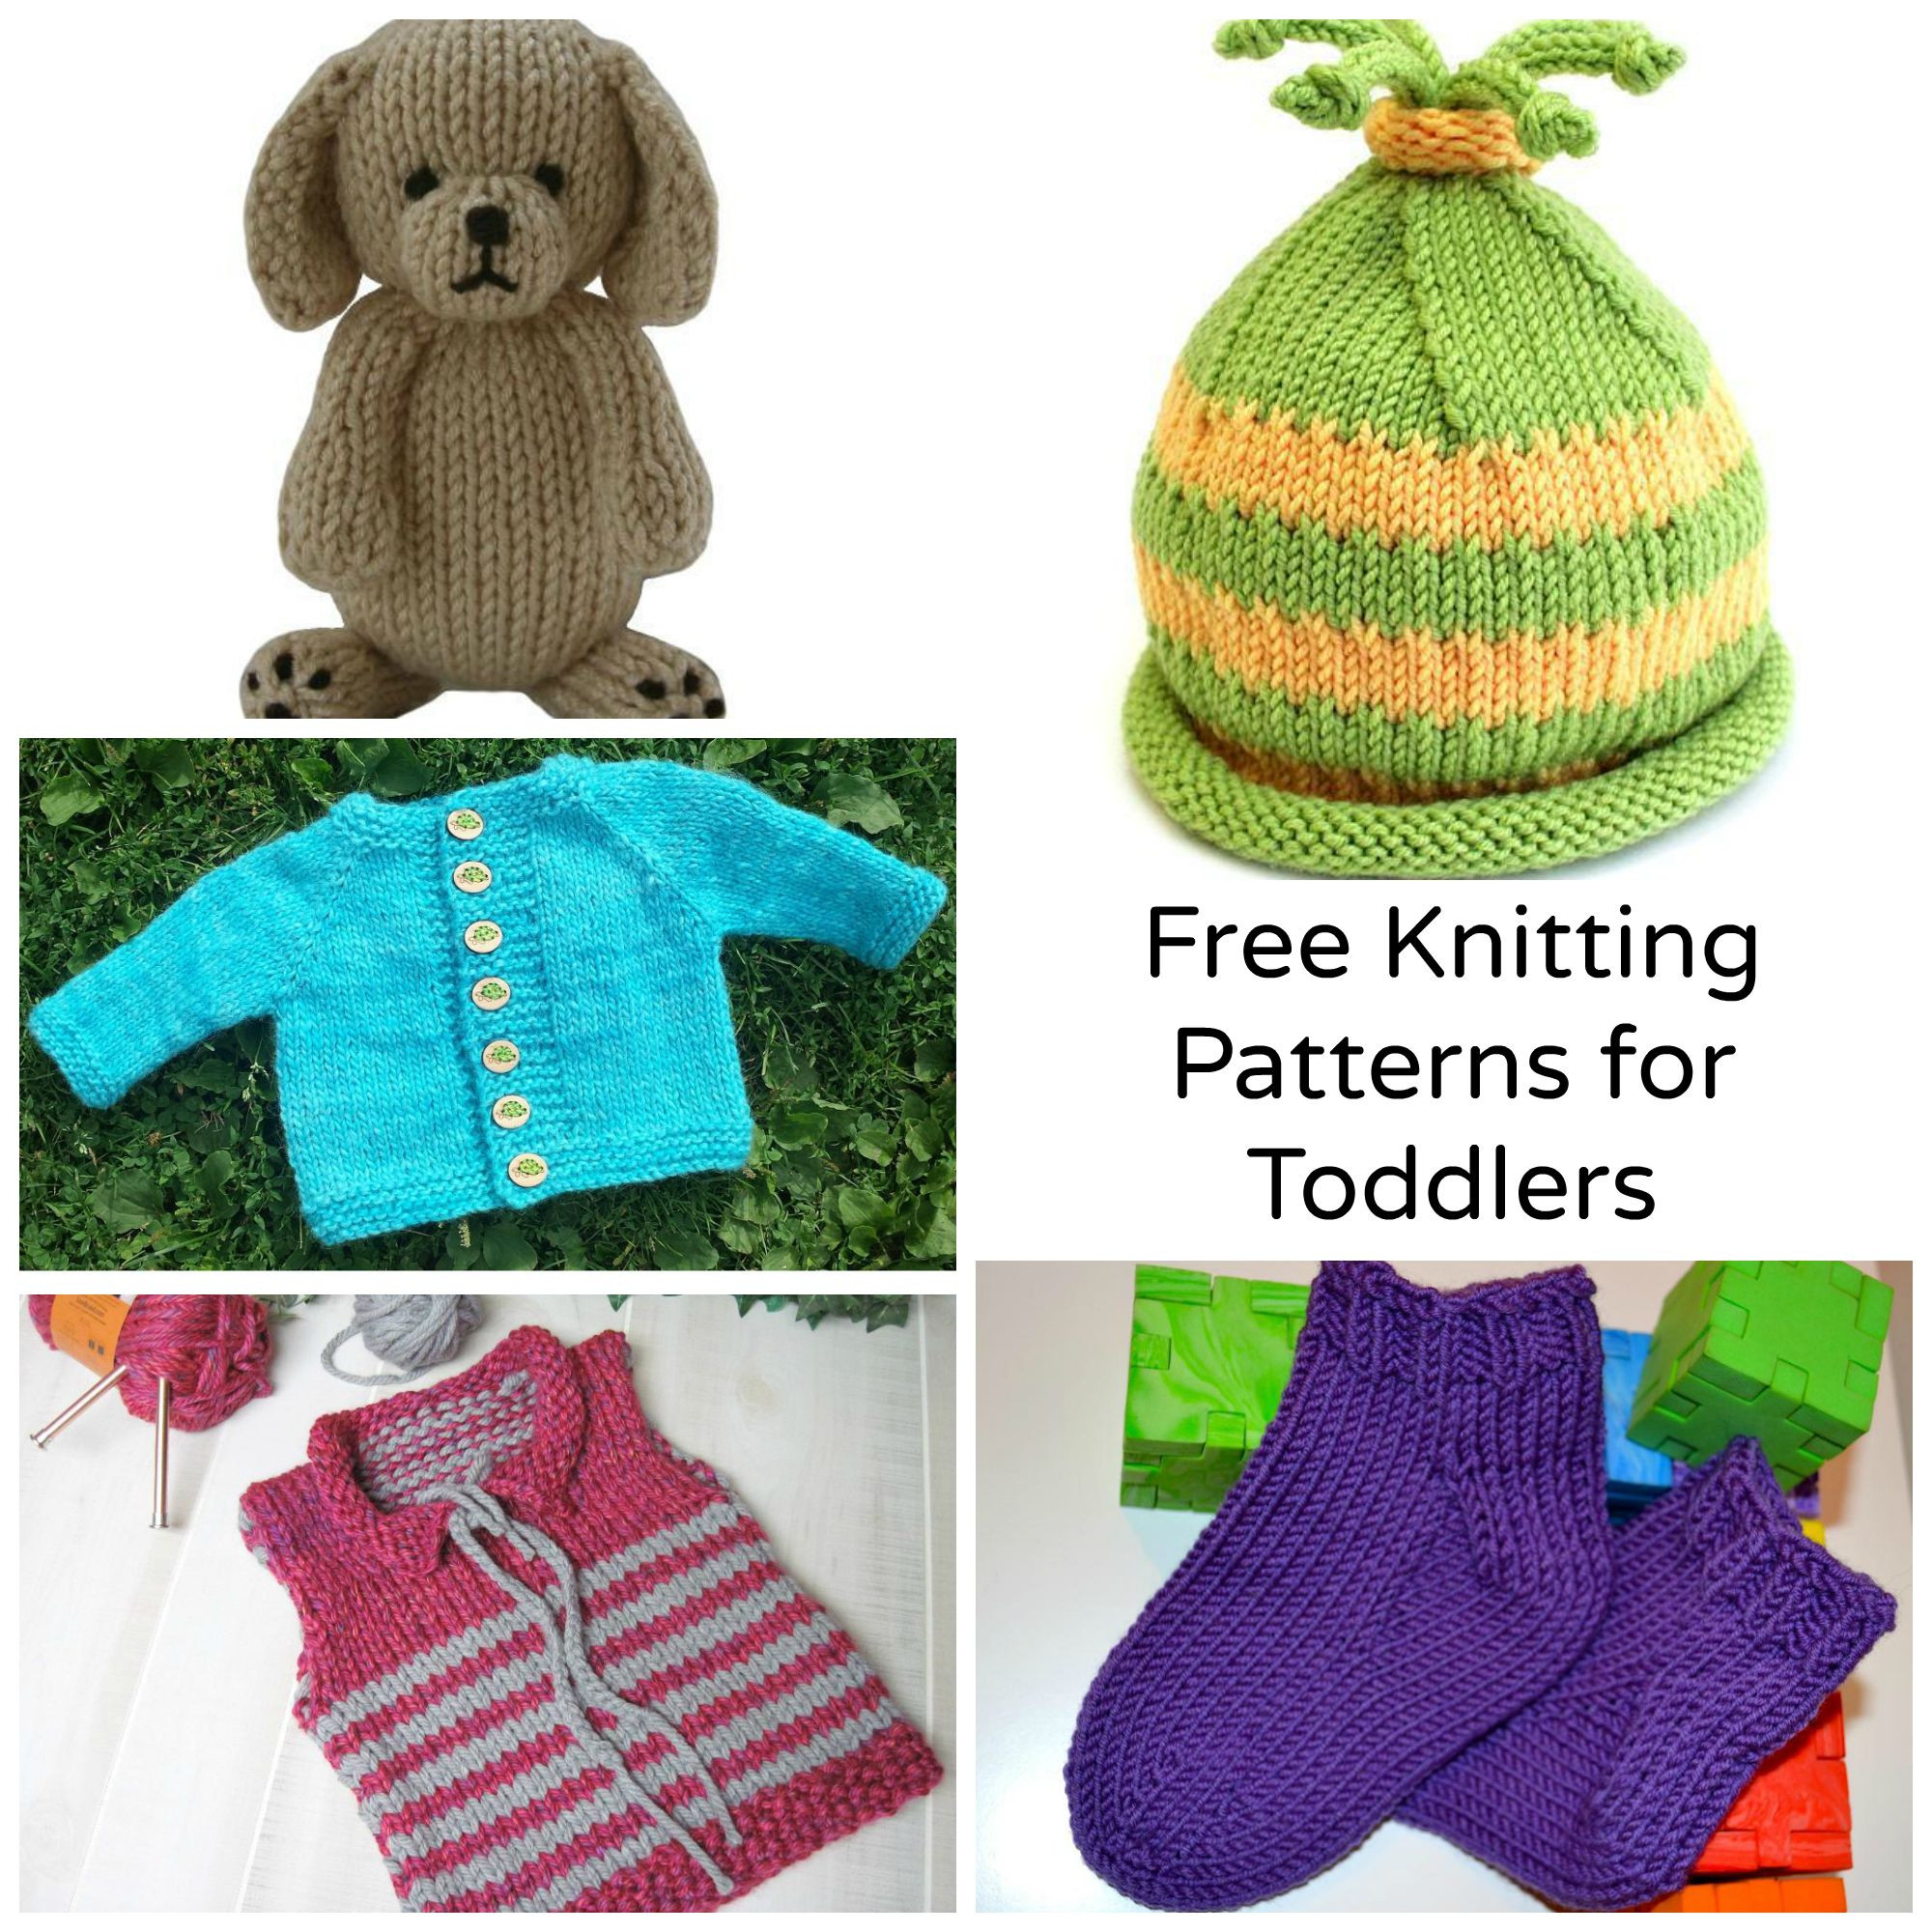 Free Baby Knitting Patterns Unique 7 Sweet Free Knitting Patterns for toddlers Craftsy Of Awesome 43 Images Free Baby Knitting Patterns